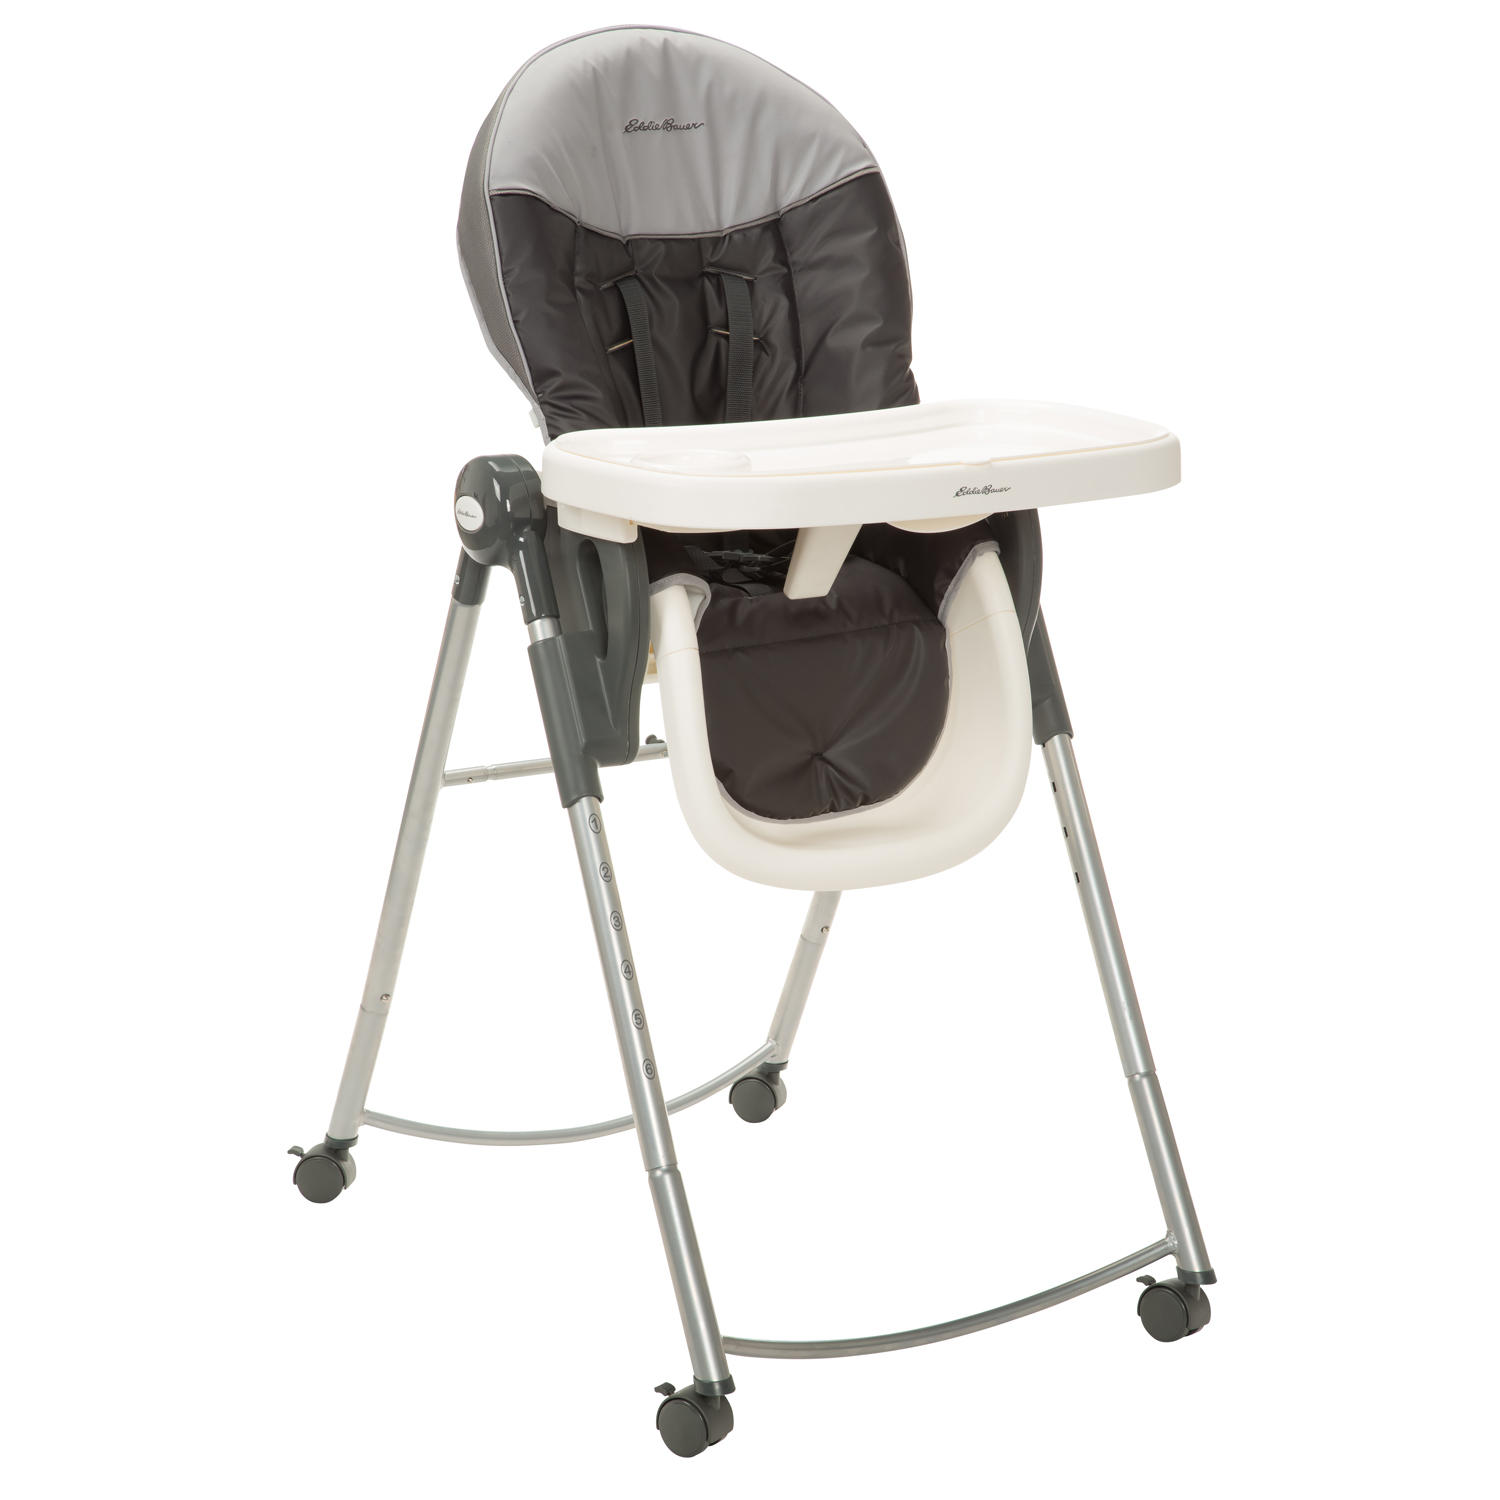 eddie bauer multi stage high chair best sports with shade baby products and gear shopping for registry